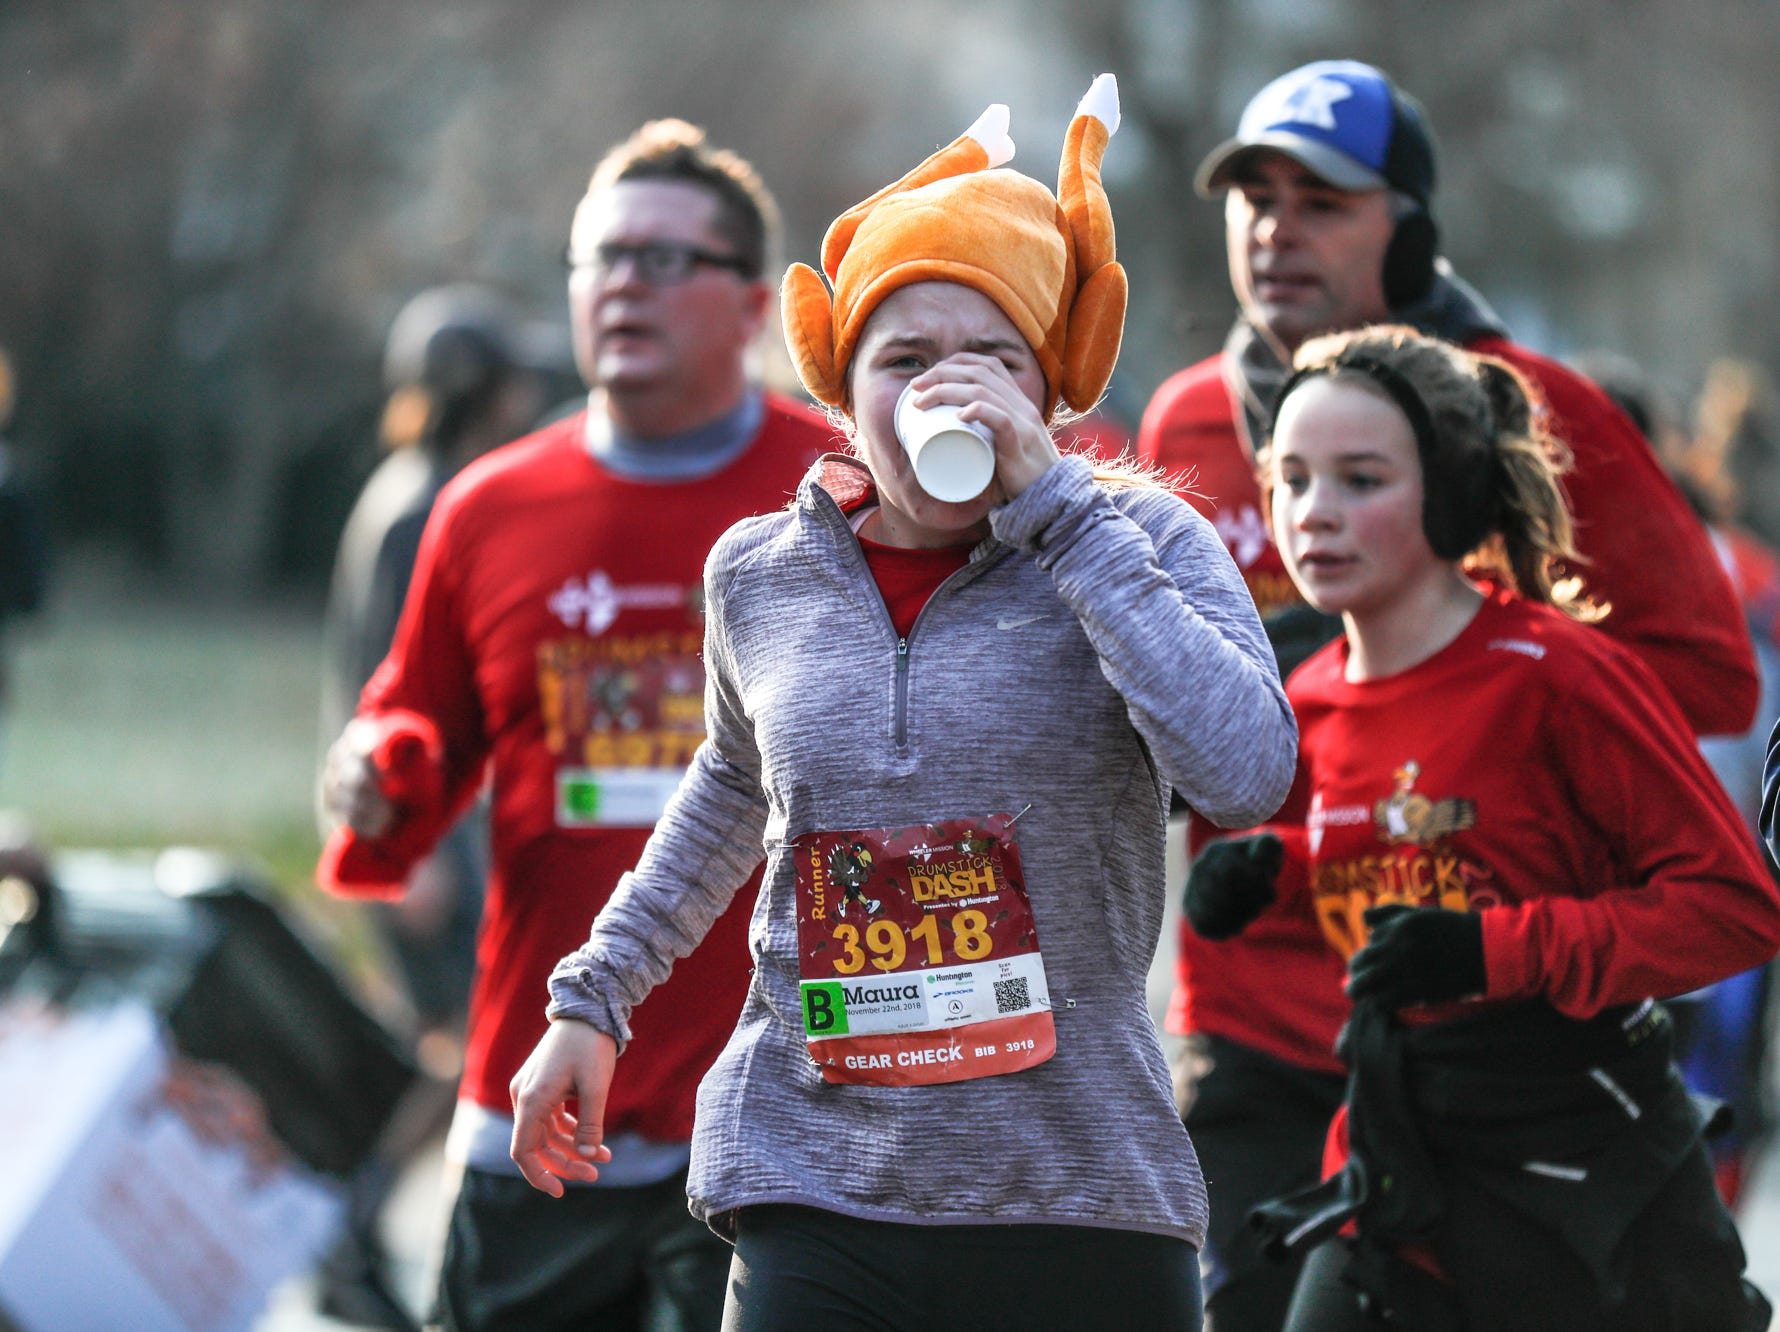 A runner wears a turkey had while running in the 2018 Drumstick Dash, held on Thanksgiving morning, in Broad Ripple Village in Indianapolis on Thursday, Nov. 22nd, 2018. Proceeds benefit Wheeler Mission.